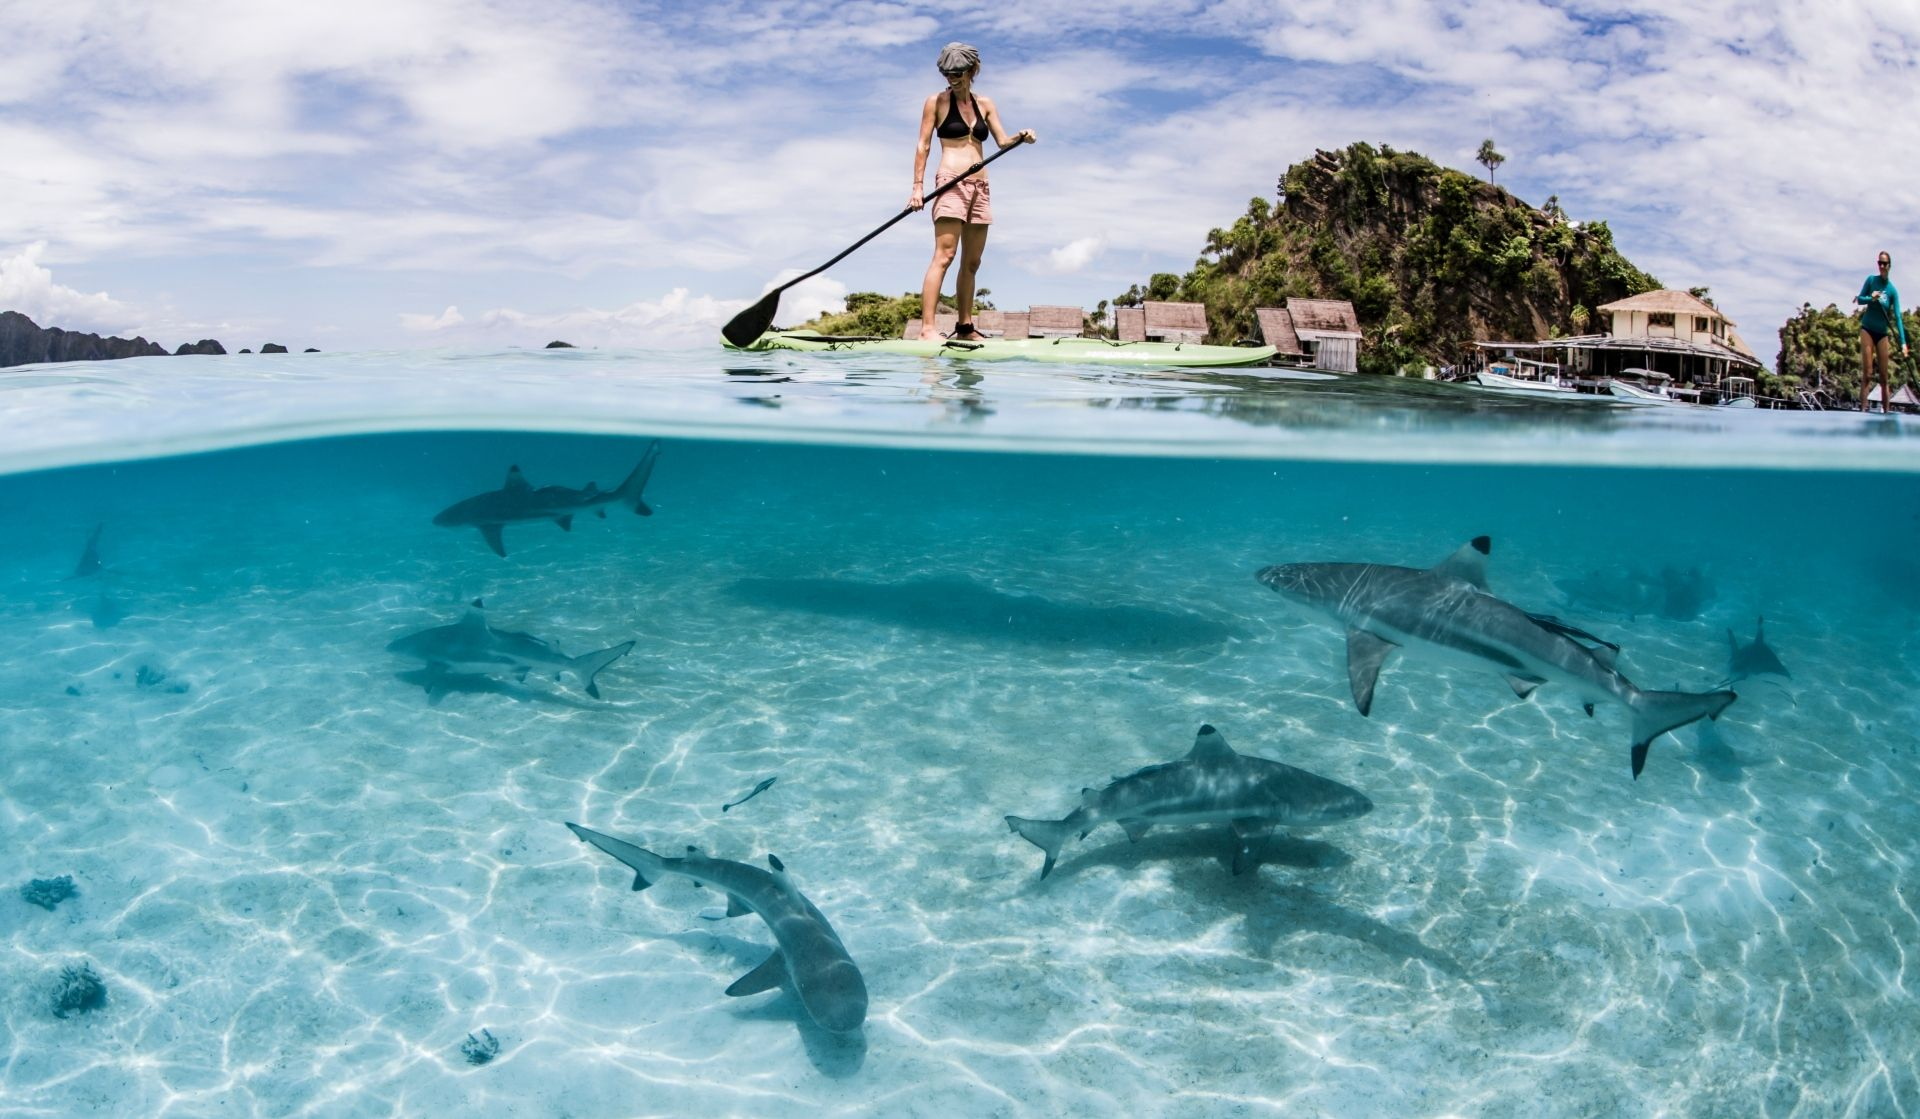 Stand Up Paddle (Photo Credit Shawn Heinrichs)